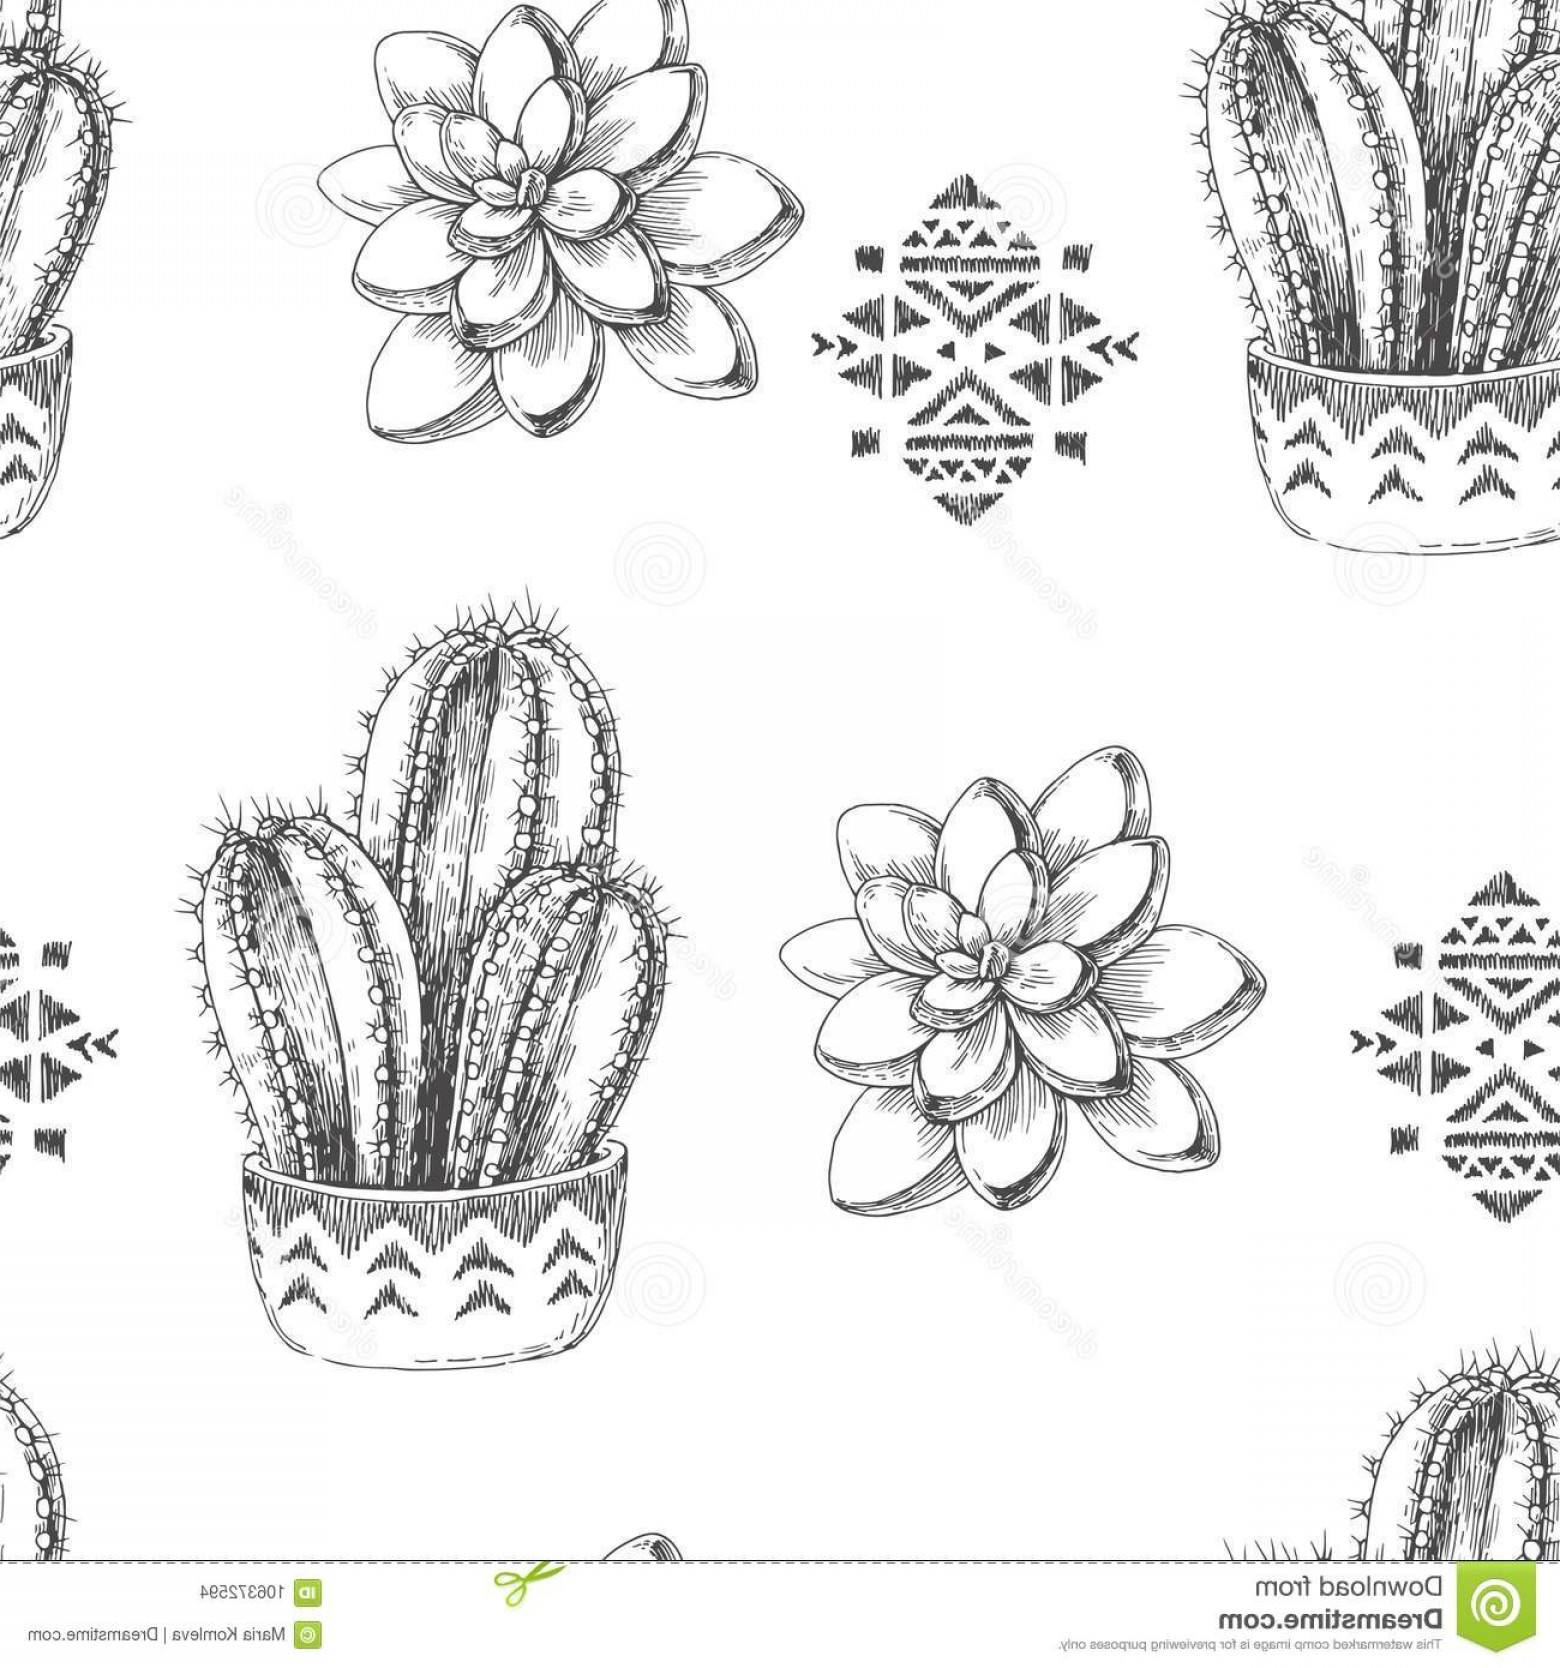 Aztec Cactus Vector: Vector Seamless Pattern Houseplants Aztec Ornament Vin Ornaments Vintage Illustration Cactus Succulents Engraving Image